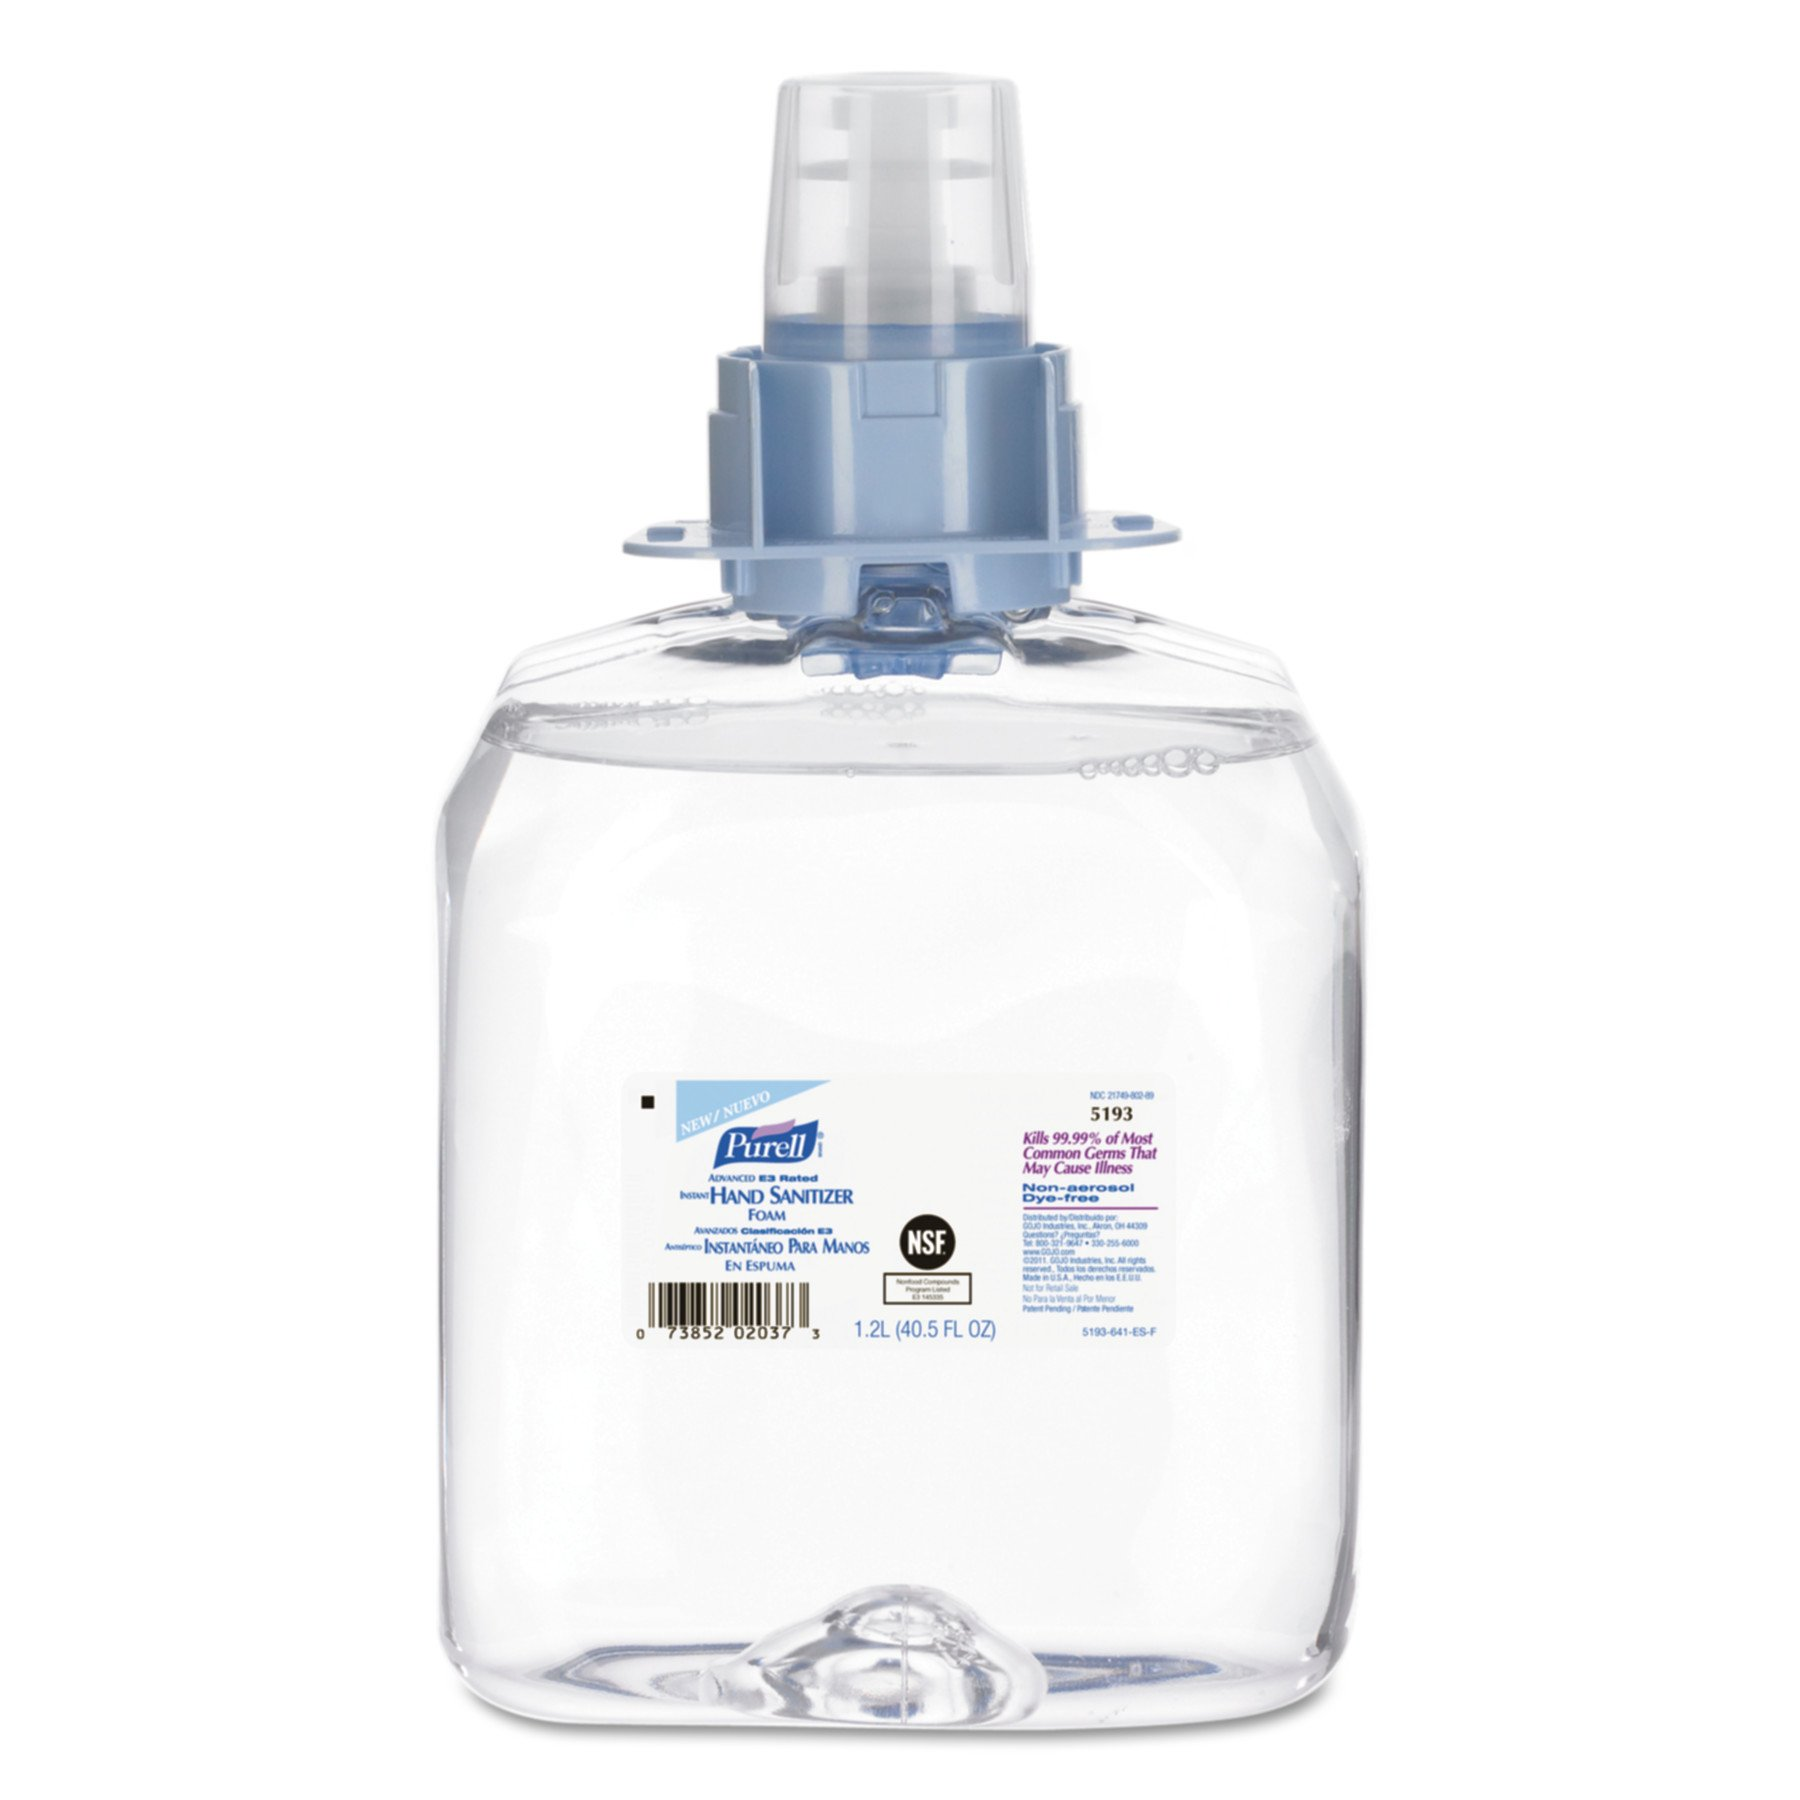 PURELL FMX-12 Advanced Hand Sanitizer E3 Rated Foam, Fragrance Free, 1200 mL Sanitizer Refill for PURELL FMX-12 Push-Style Dispenser (Case of 3) – 5193-03